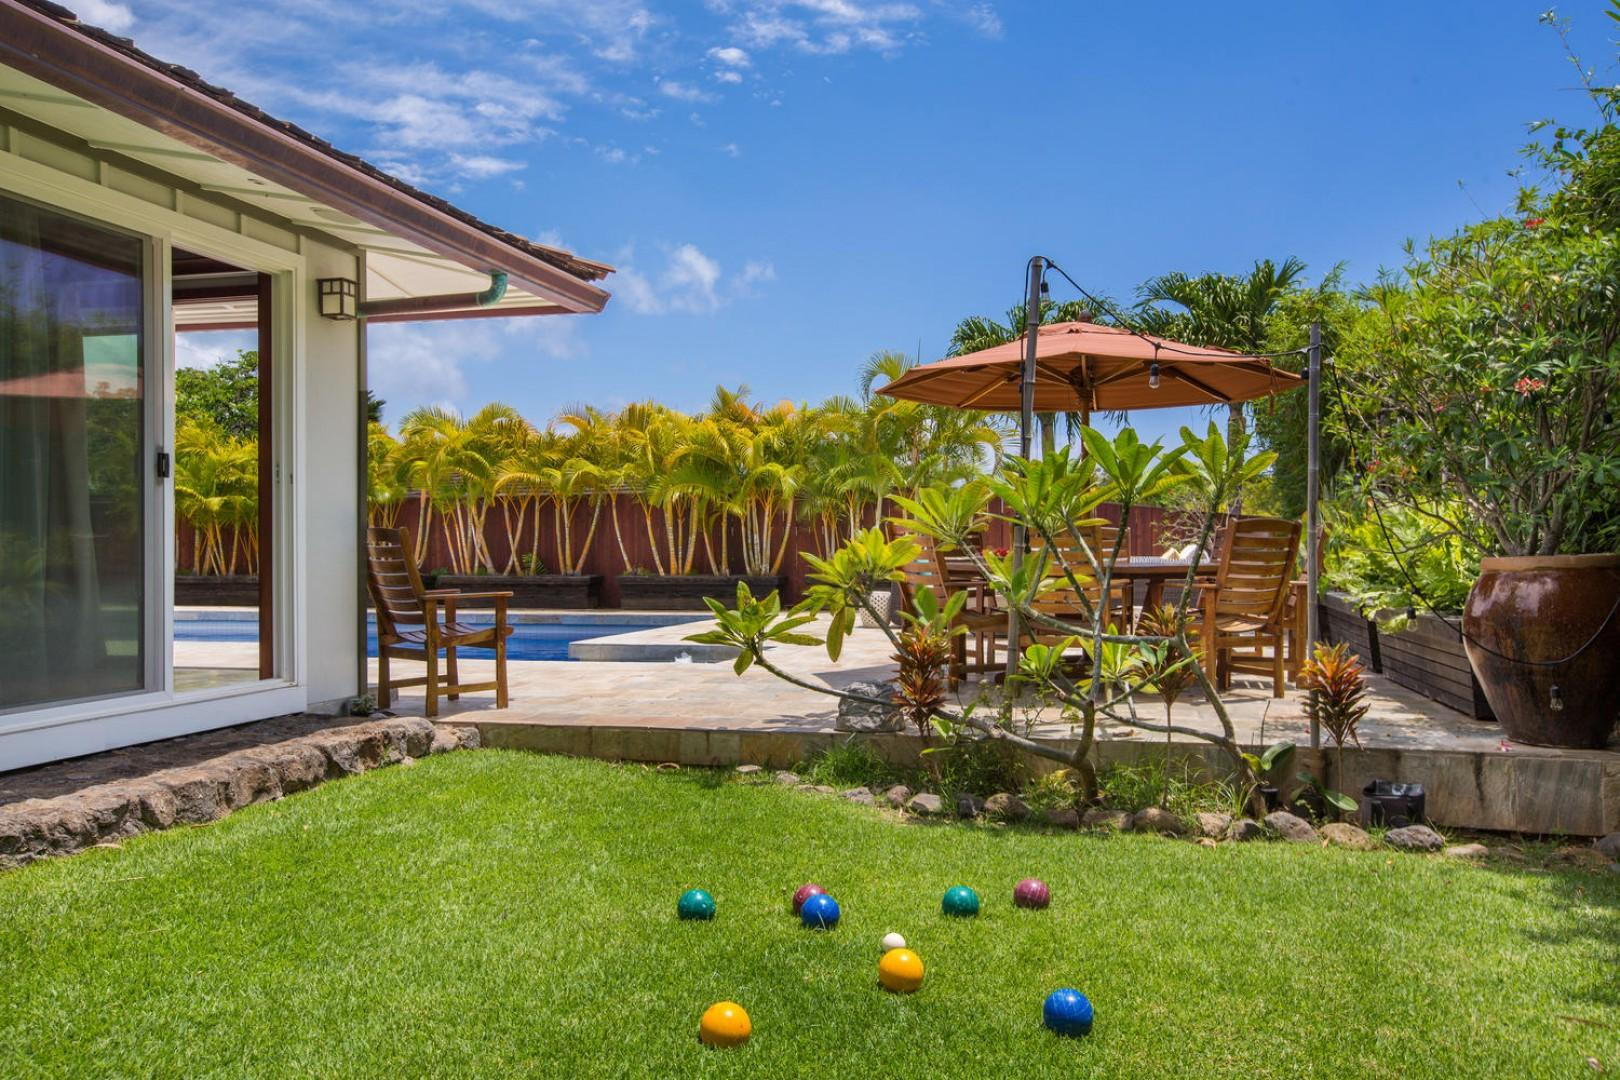 Right outside the first-floor master bedroom, play bocce ball, swim, and enjoy yourself!